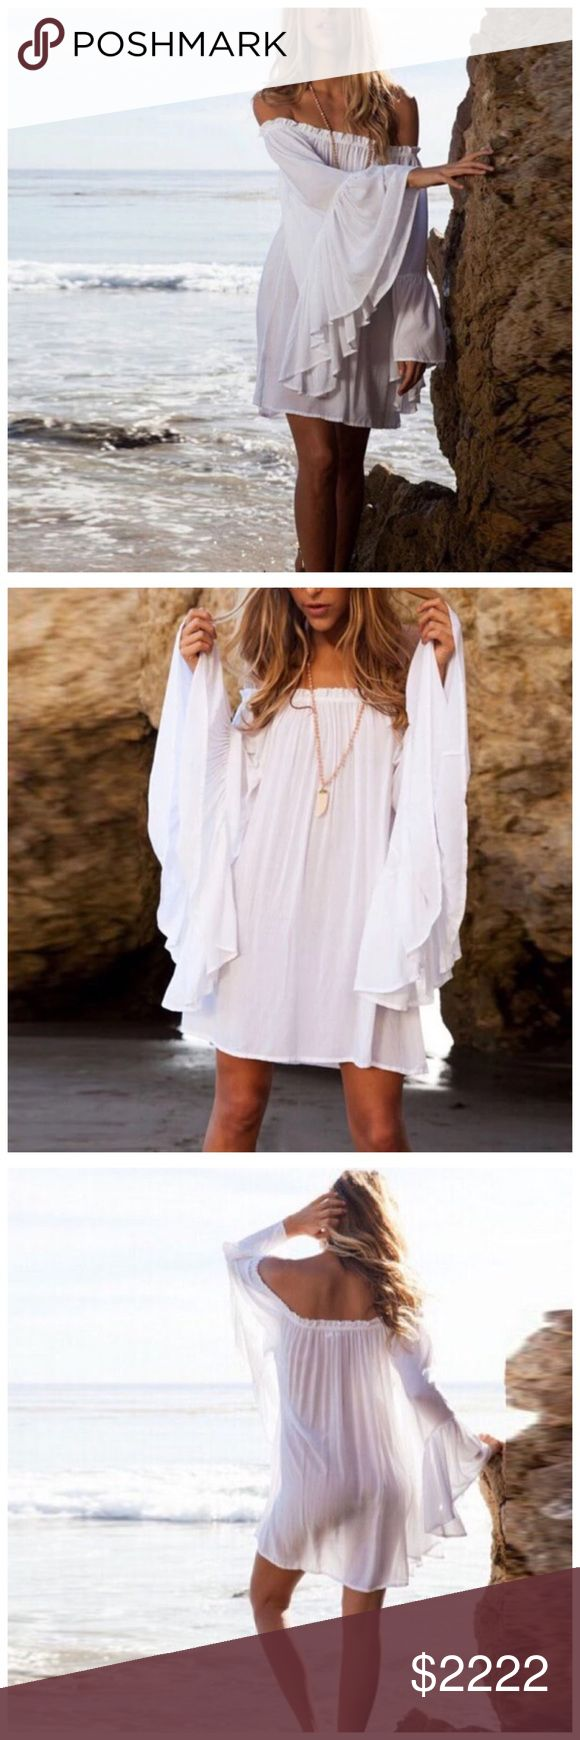 "🆕 White Boho Off The Shoulder Dress ‼️ PRICE FIRM UNLESS BUNDLED WITH OTHER ITEMS FROM MY CLOSET ‼️   Off The Shoulder Dress  Retail $49  Absolutely perfect for the beach! Get that boho chic look! 100% cotton.   SMALL Bust 39"" Length 28""   MEDIUM Bust 41"" Length 28""  LARGE Bust 43"" Length 29"" Dresses"